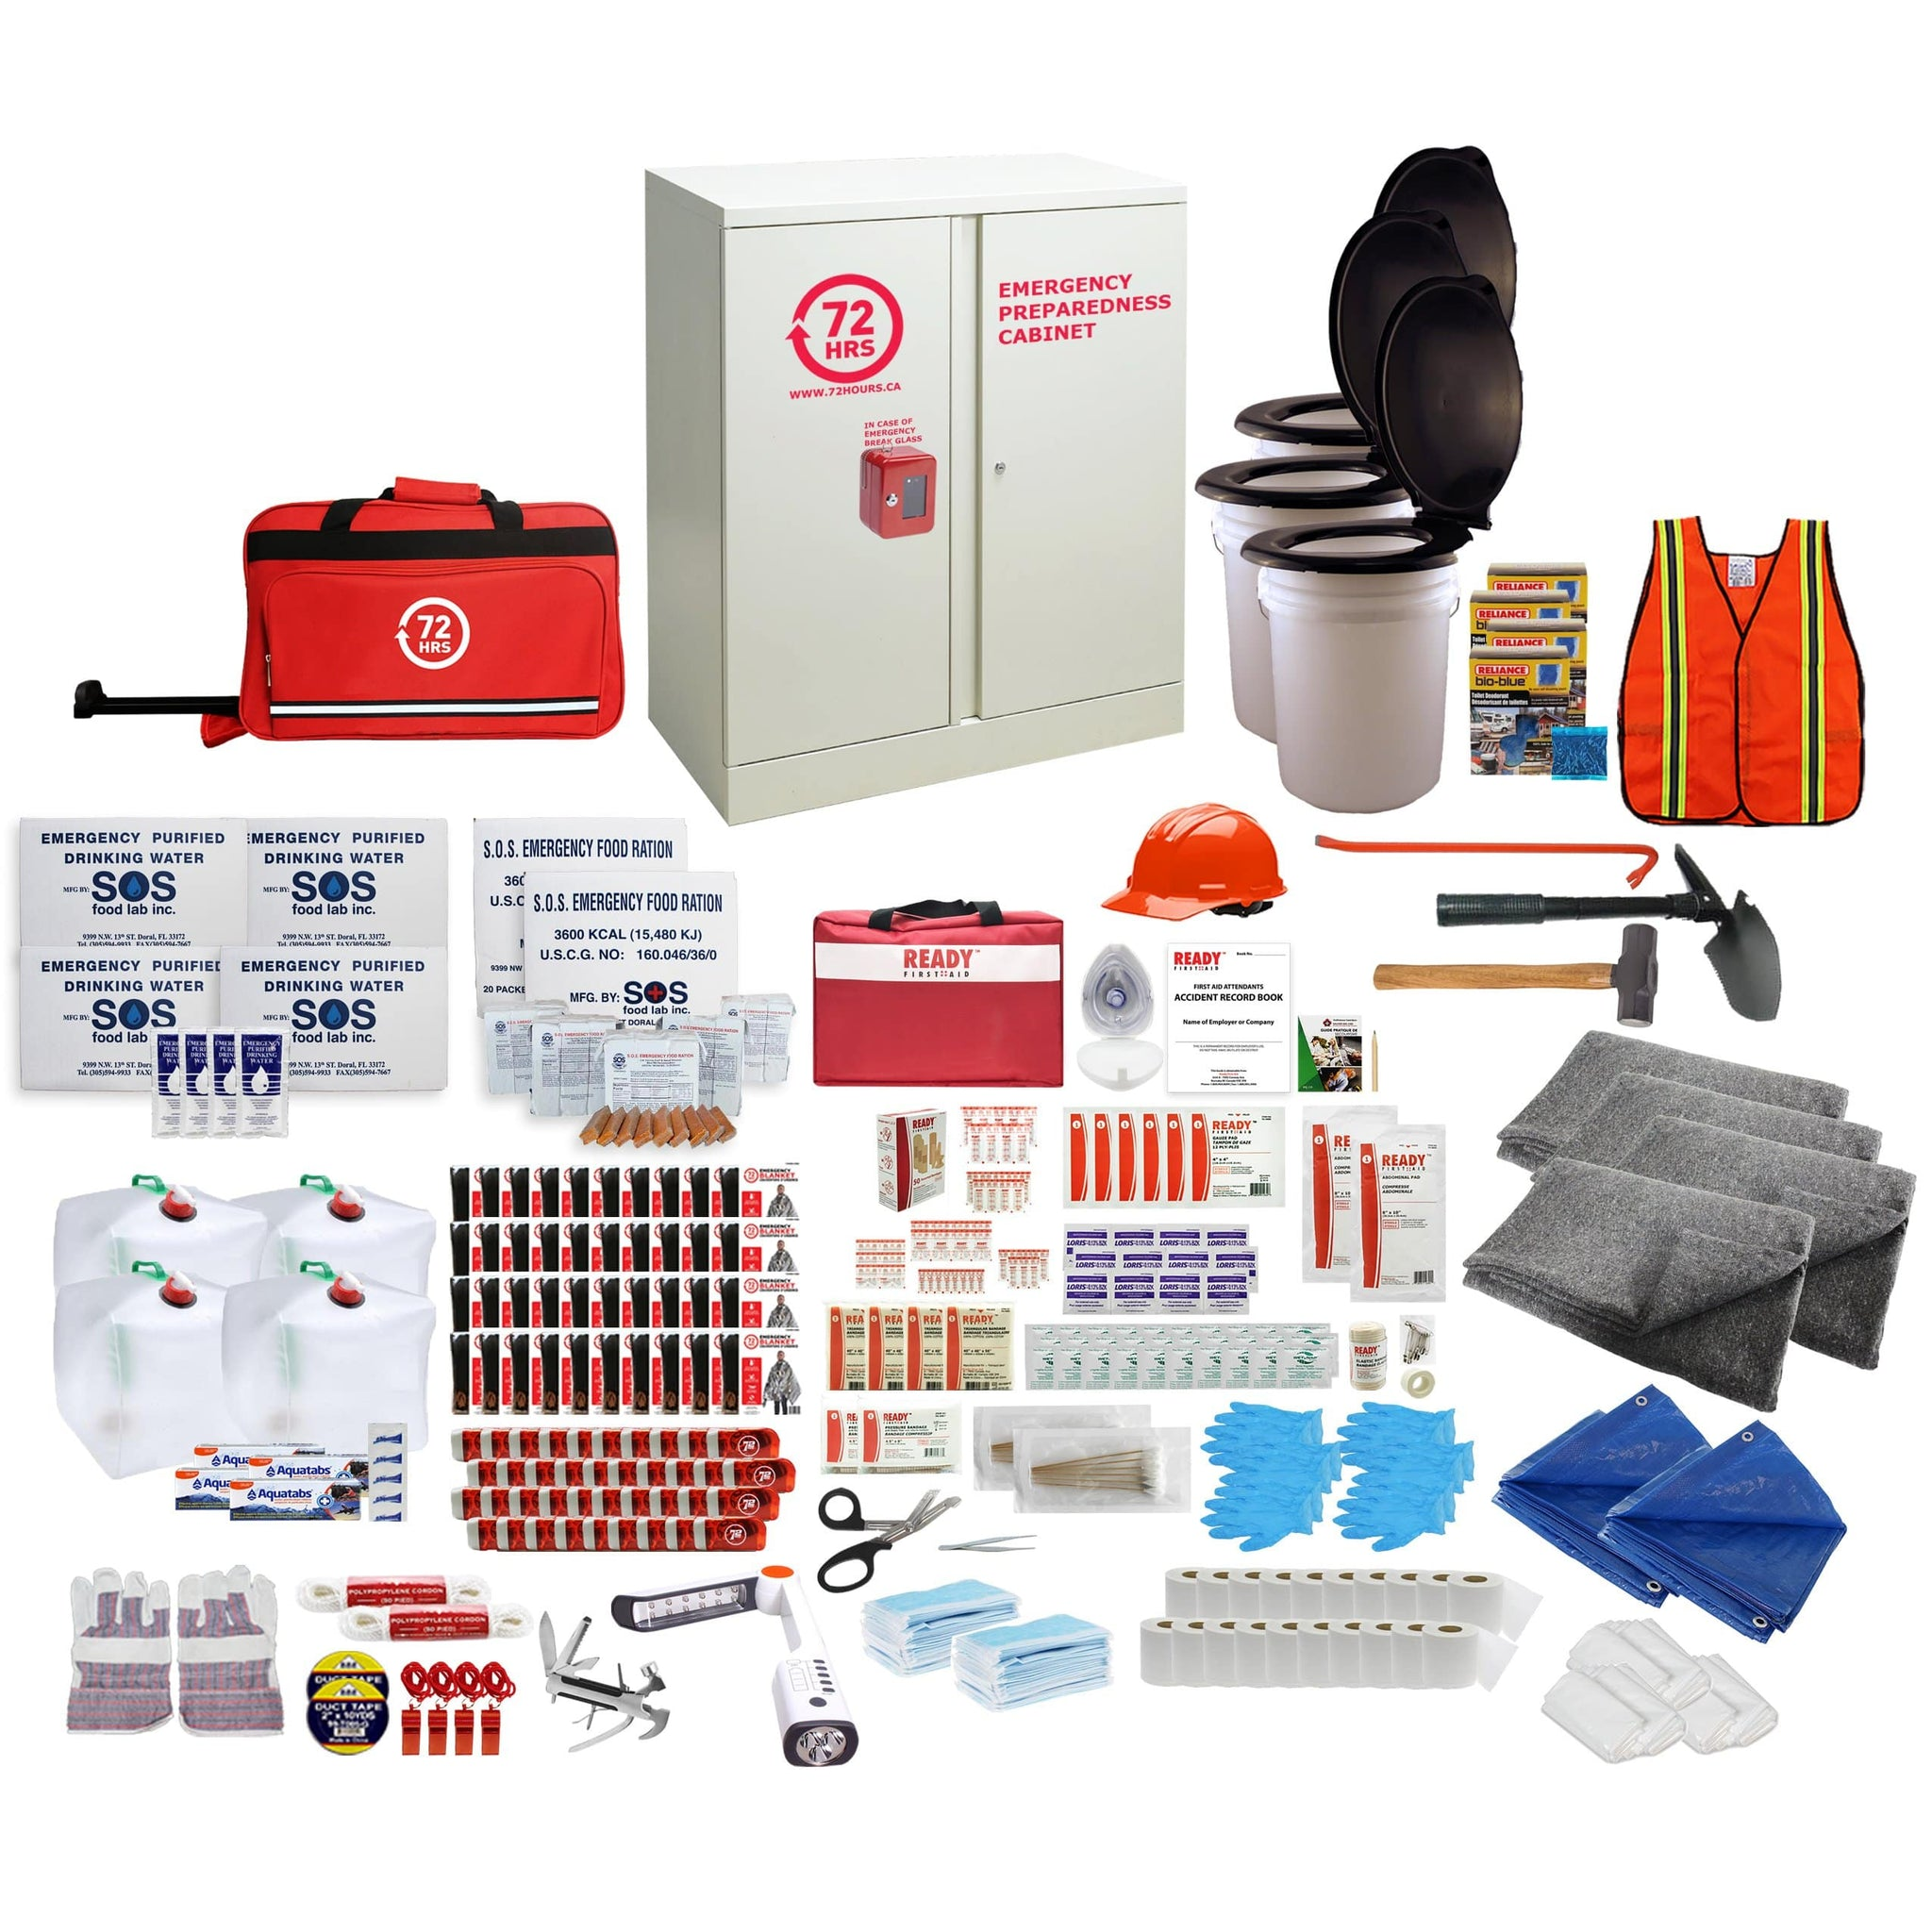 40 Person Emergency Cabinet Kit